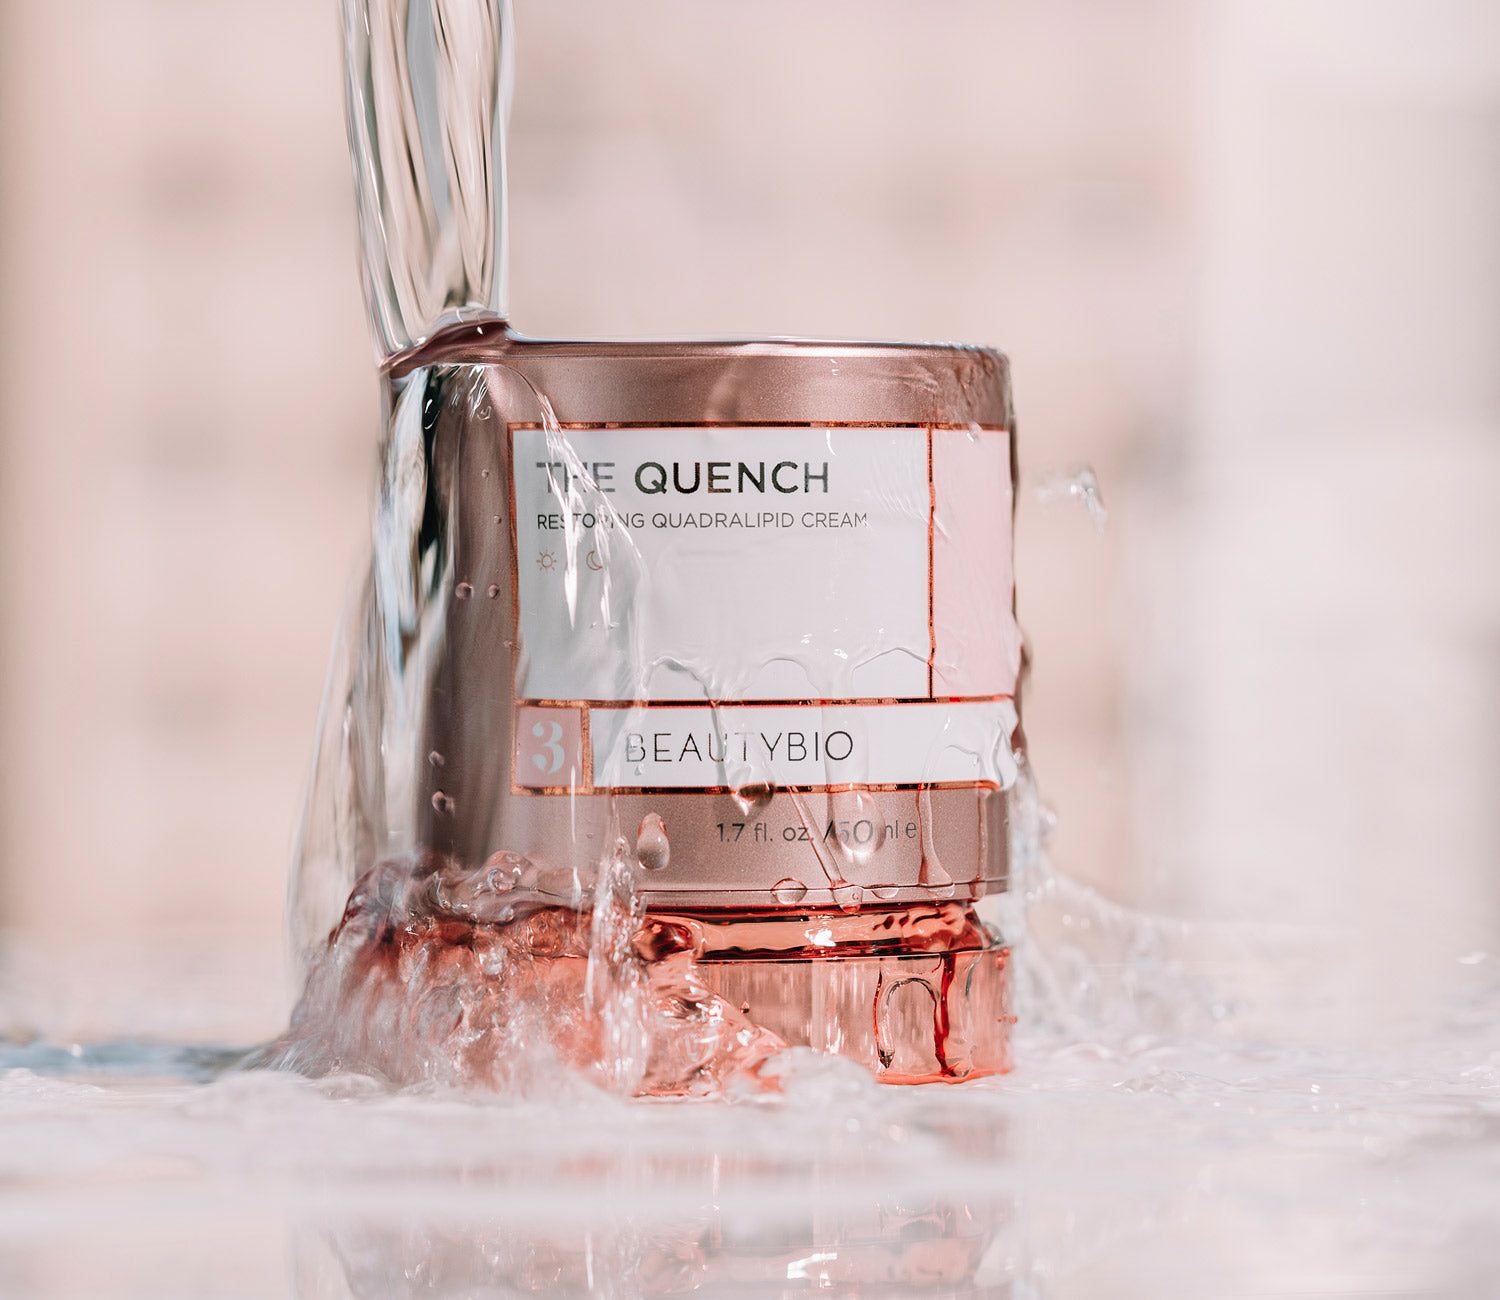 The Quench Cream